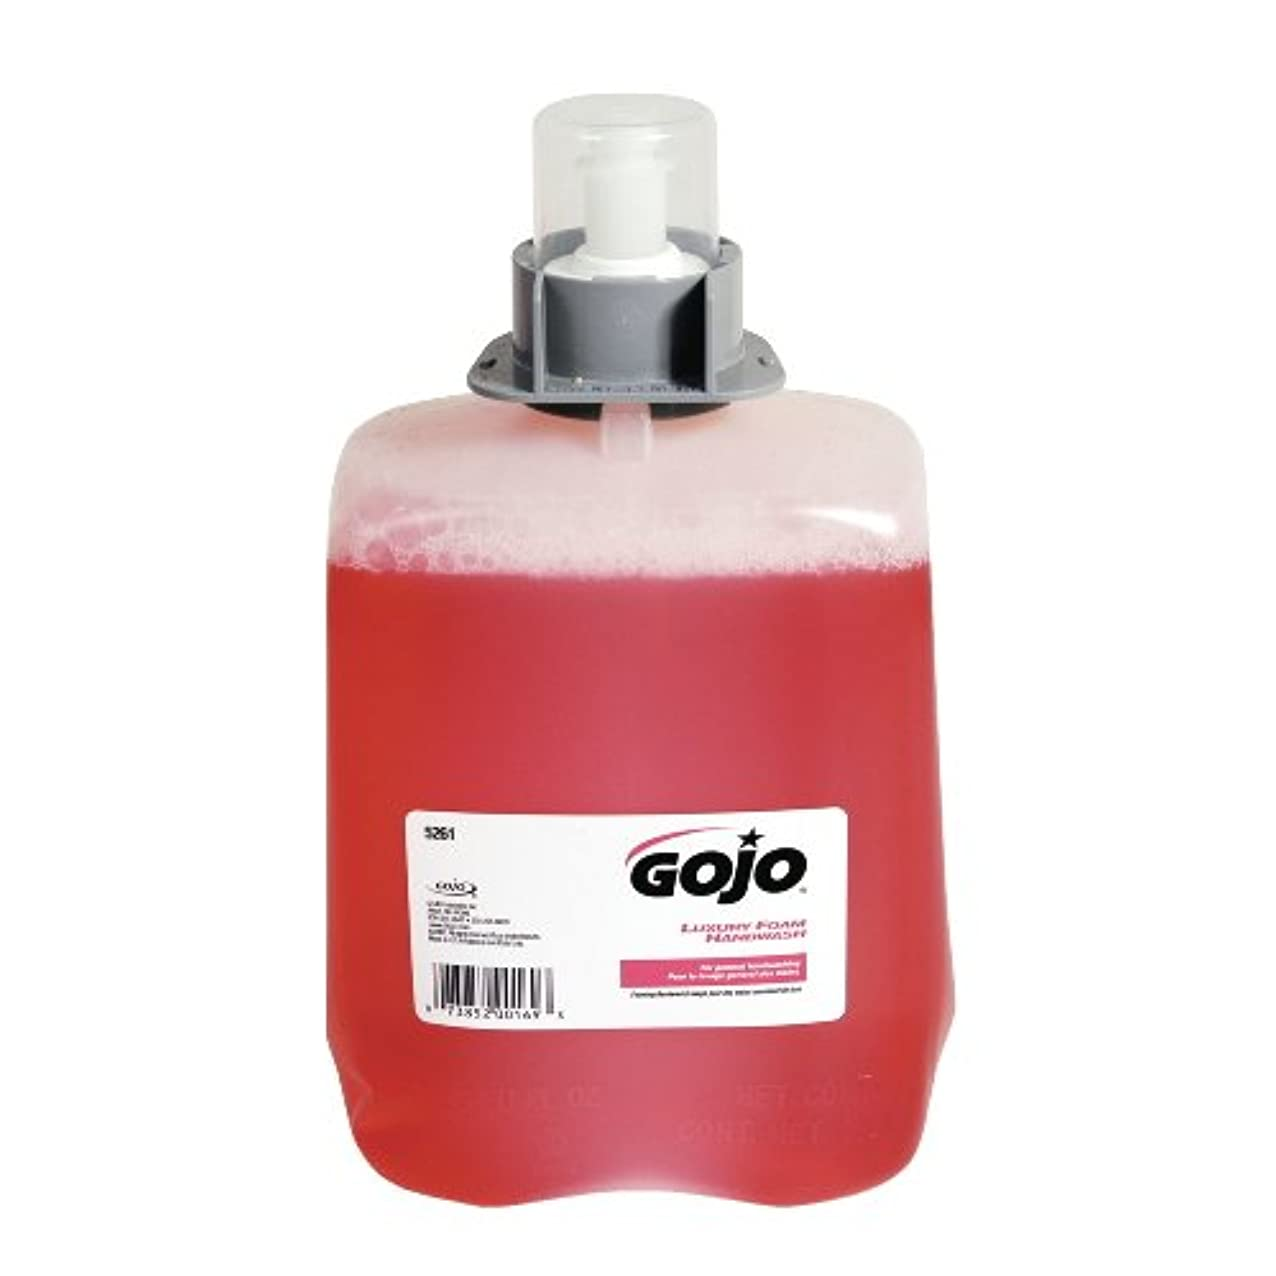 無知トランクライブラリ以内にGOJ526102 - Gojo Luxury Foam Hand Wash Refill for FMX-20 Dispenser by Gojo